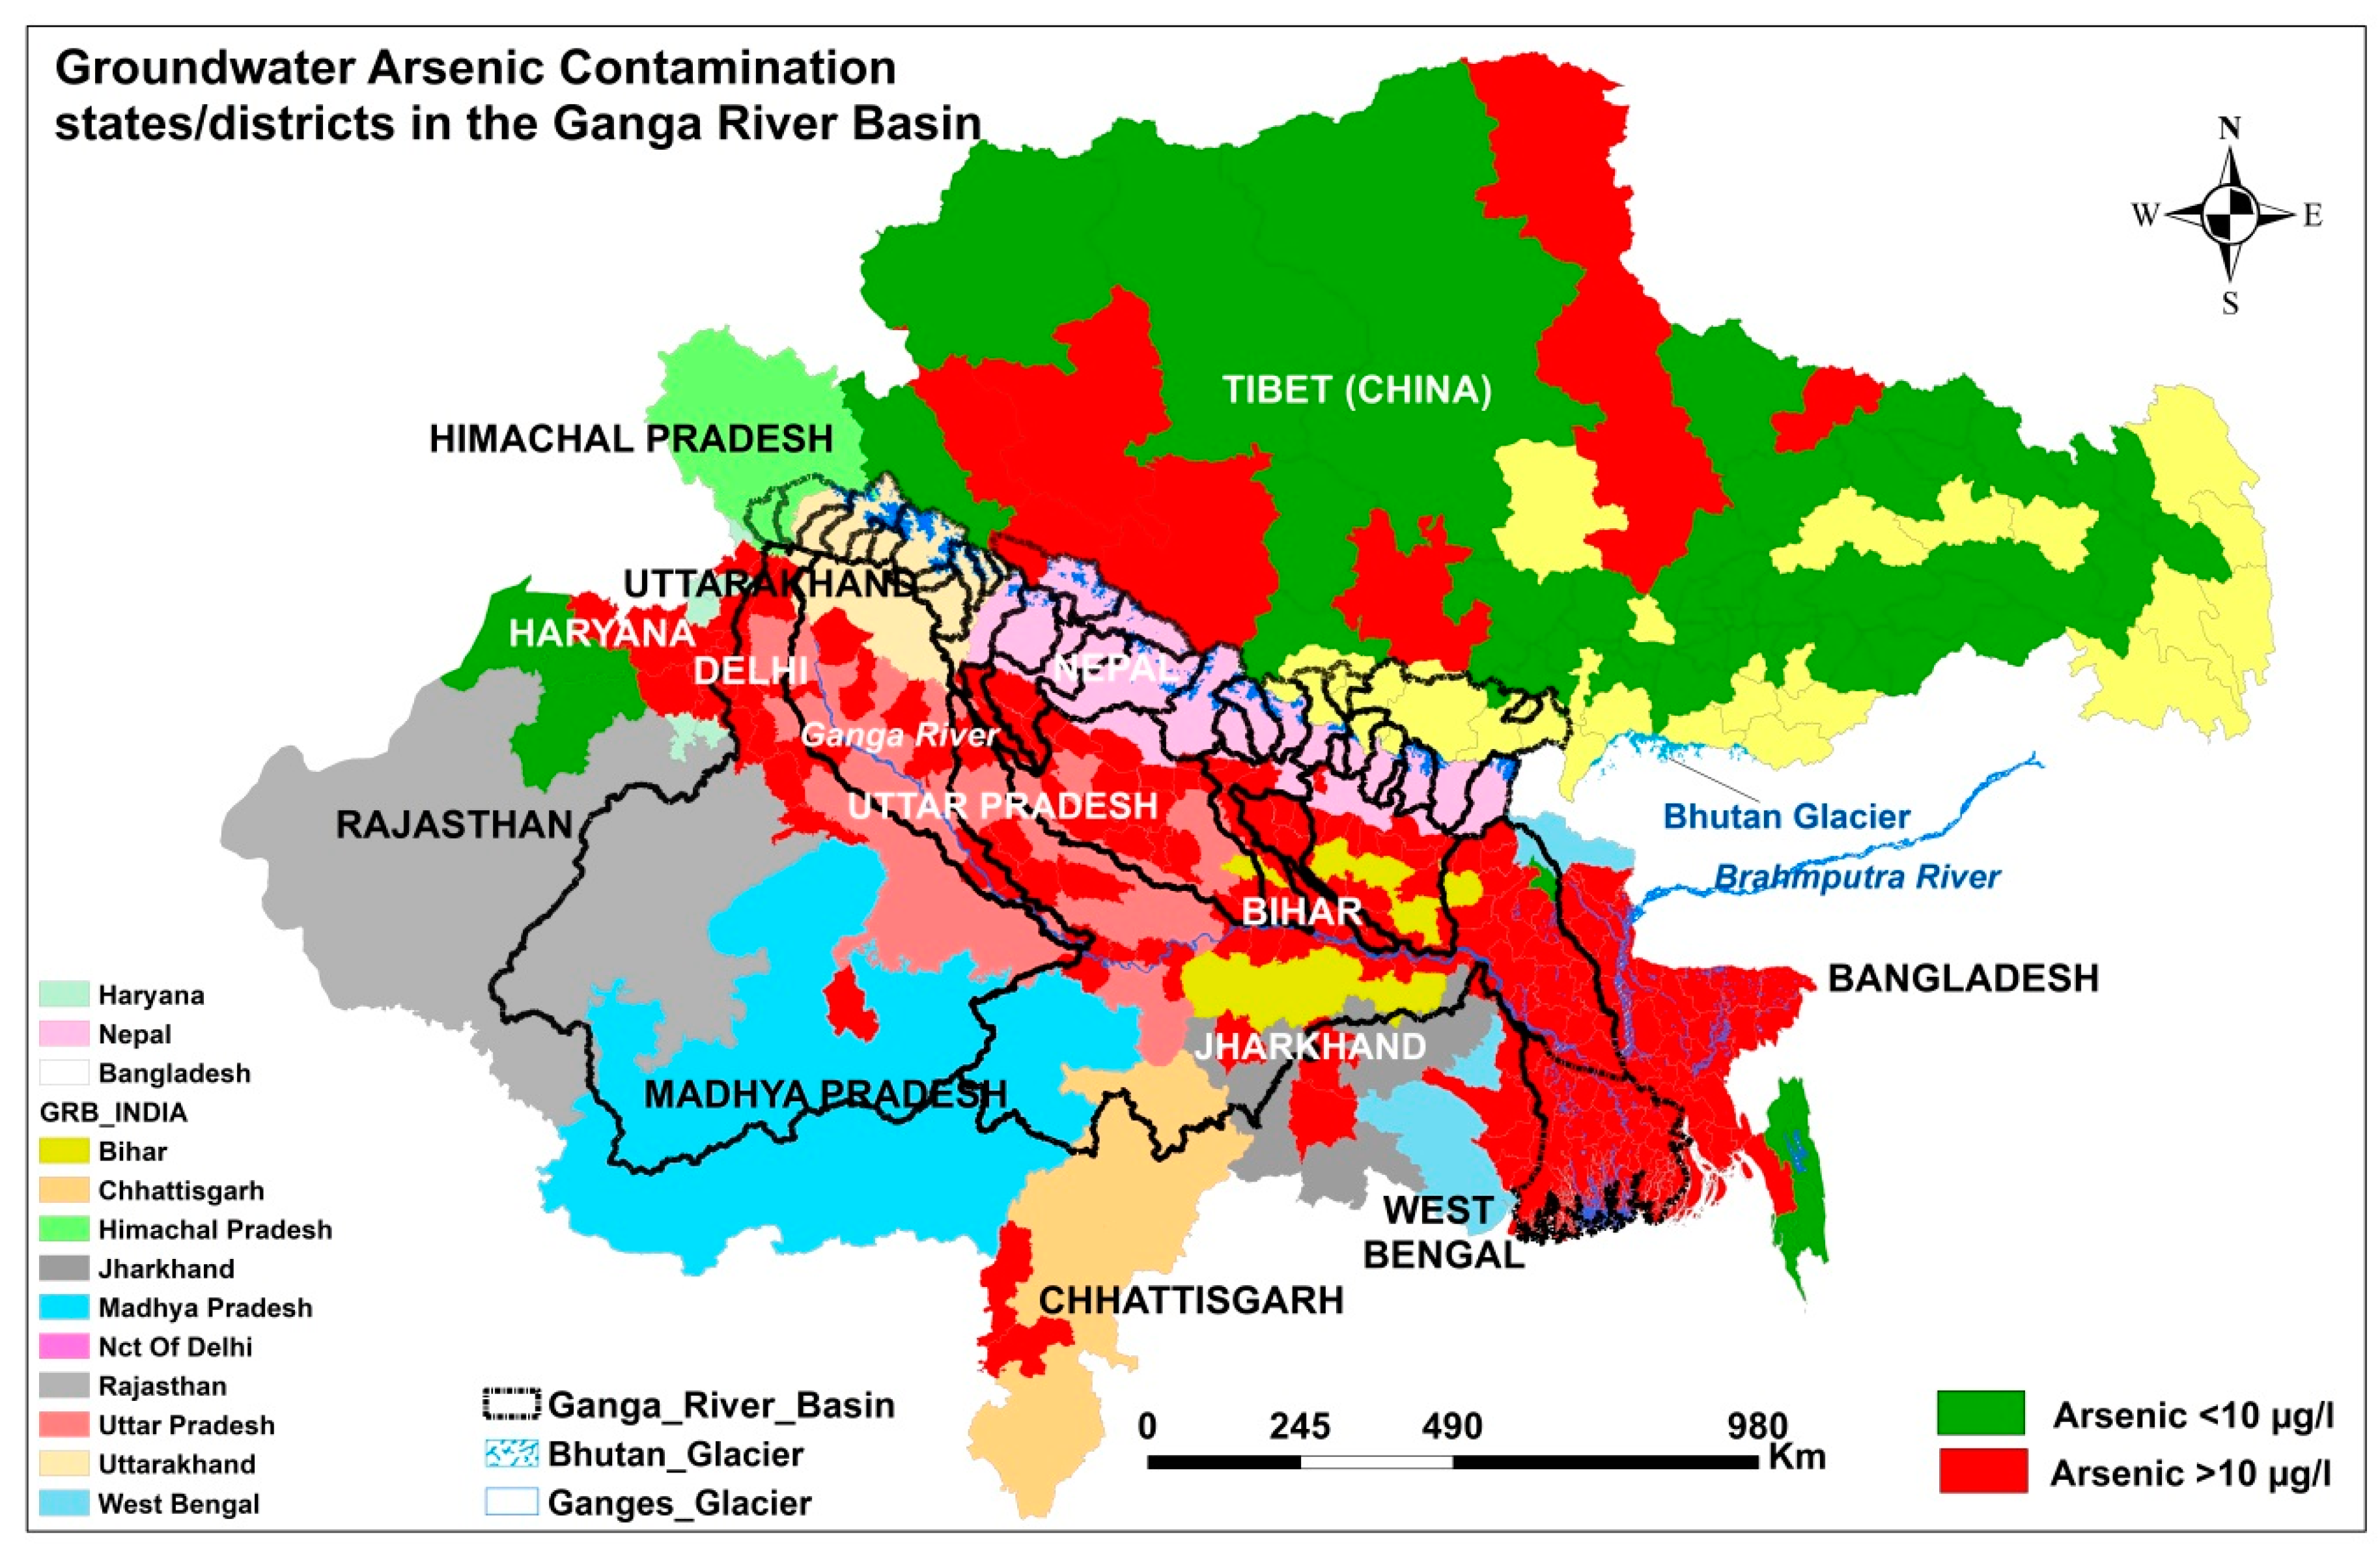 IJERPH | Free Full-Text | Groundwater Arsenic Contamination in the